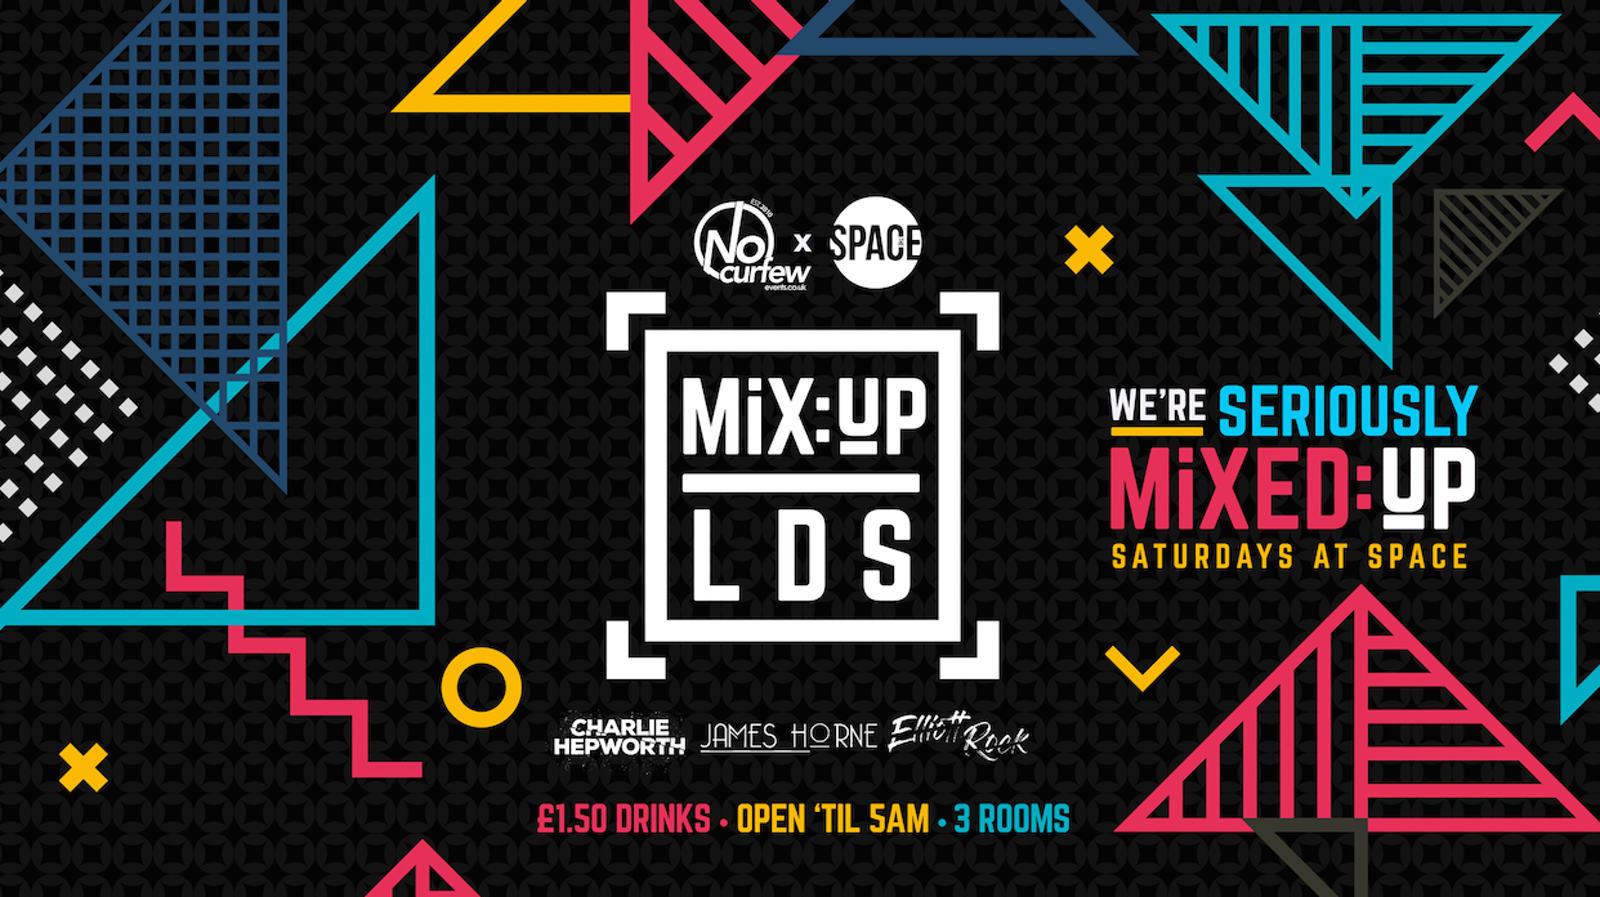 MiX:UP LDS at Space :: Moving In Party :: £1.50 Drinks!